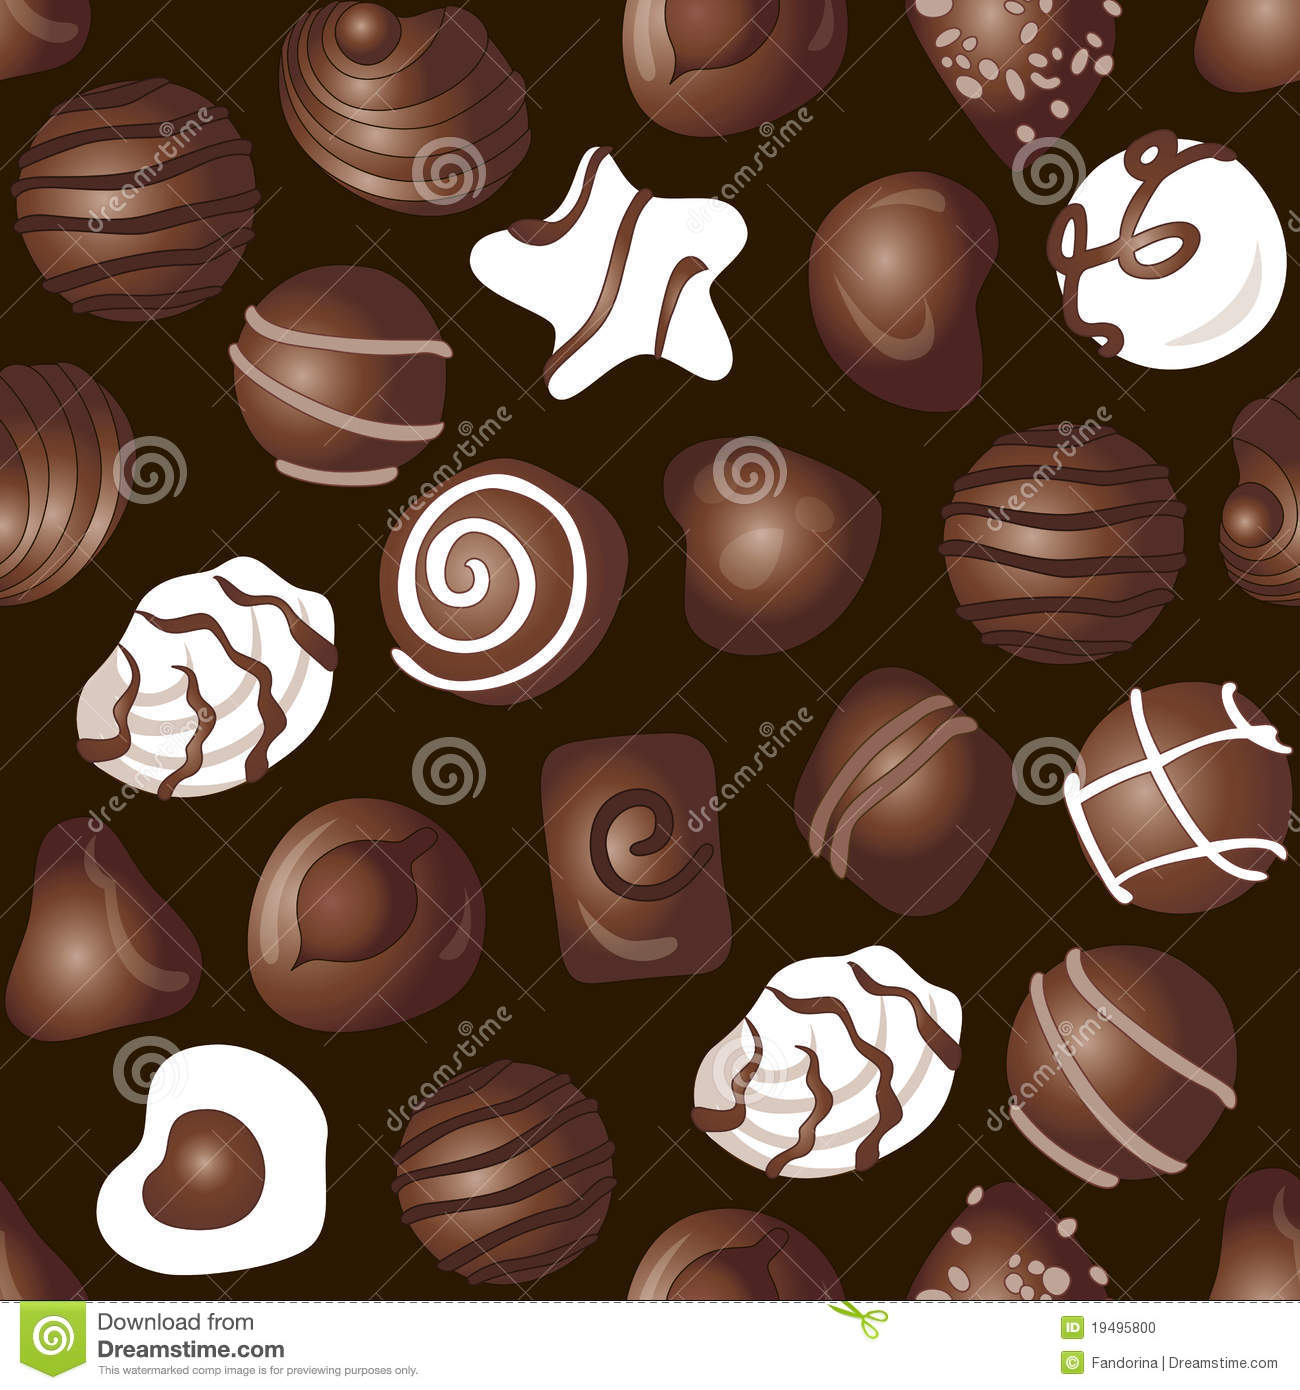 hight resolution of cartoon candy chocolate pattern a lot of different delicious chocolates on a dark brown background